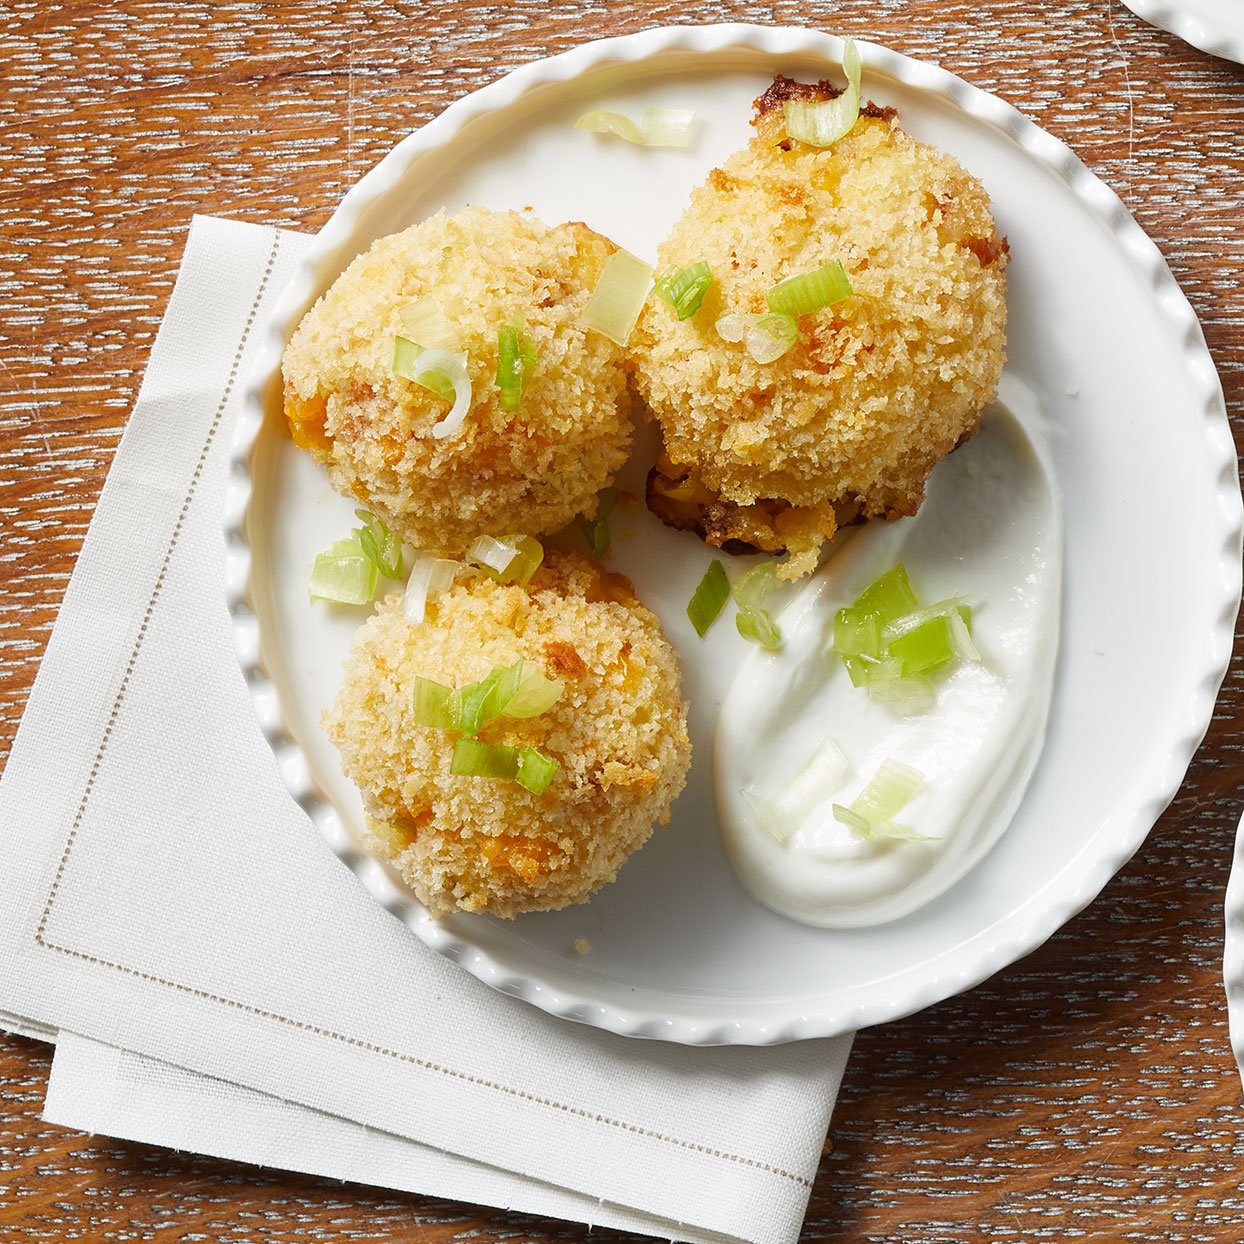 Crispy Loaded Mashed Potato Balls